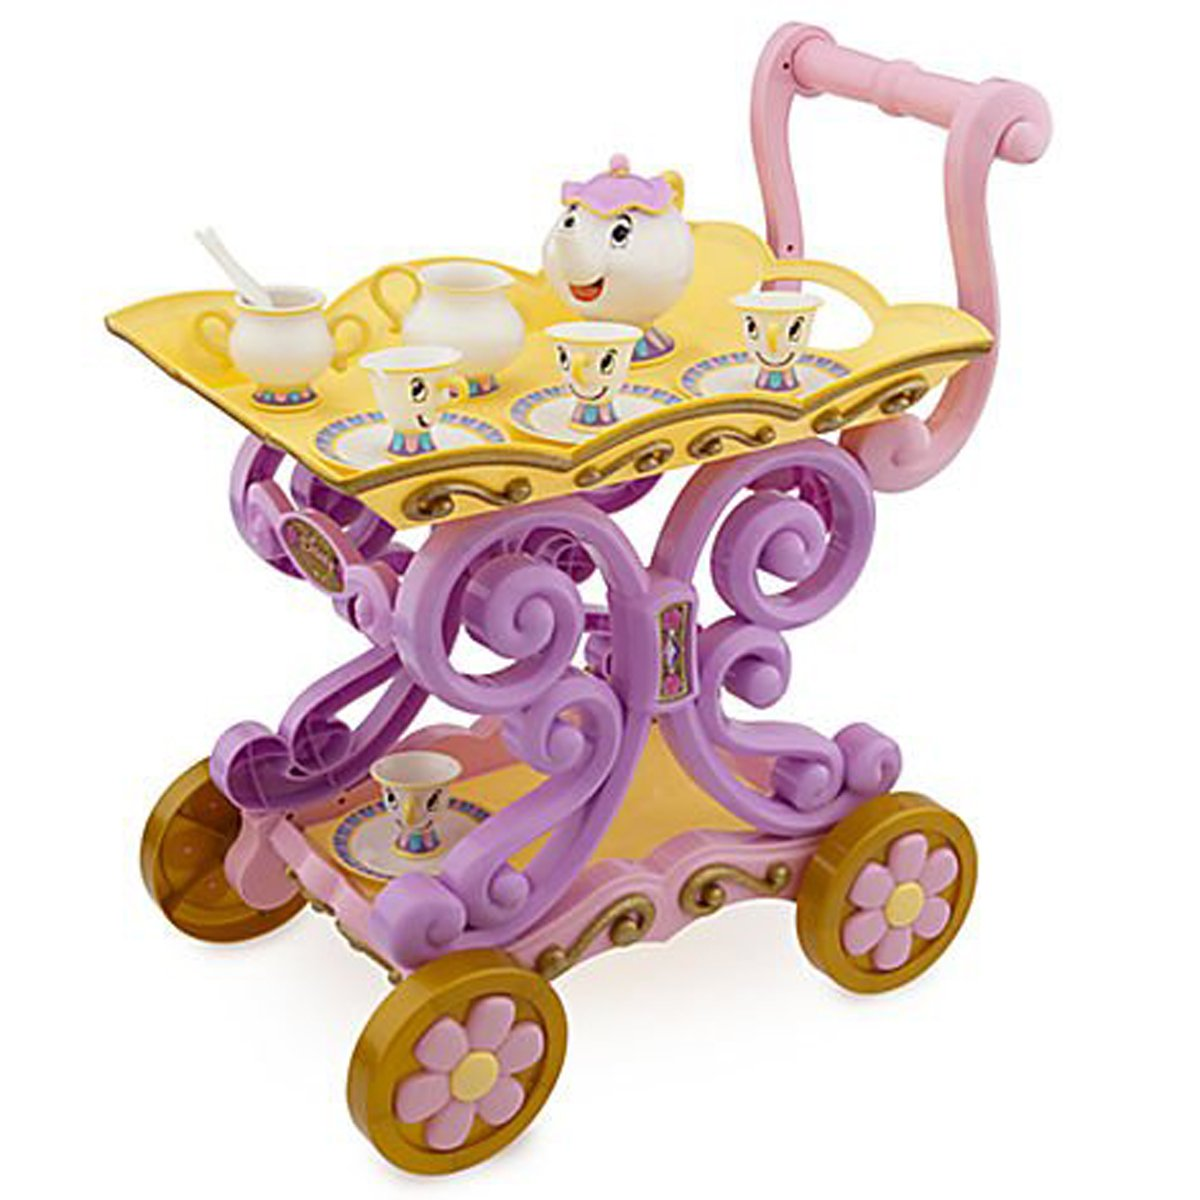 Disneys Princess Belle Enchanted Talking Tea Cart Mrs. Potts and Chip